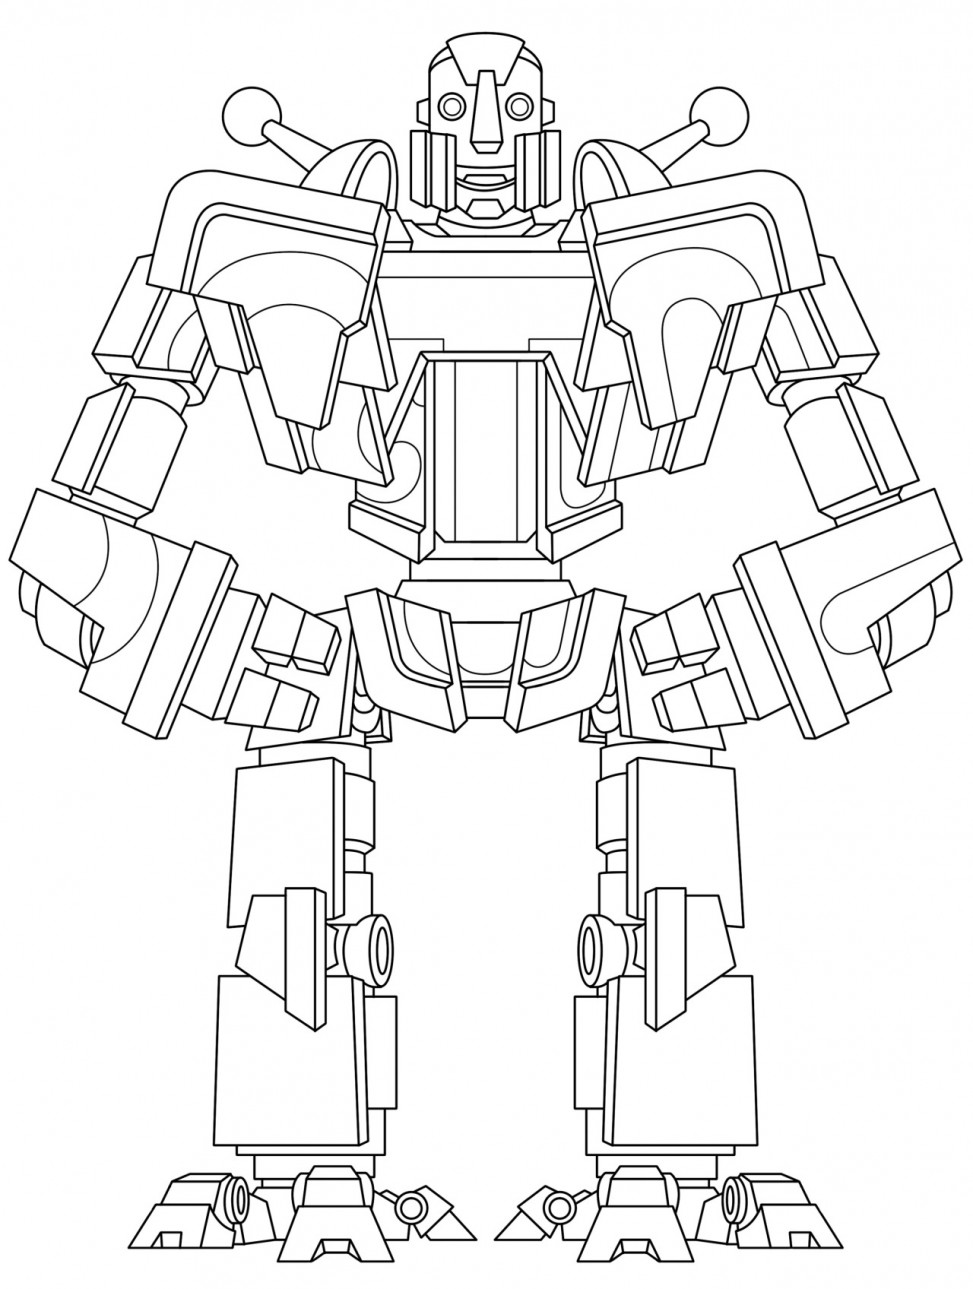 Robot colouring sheet